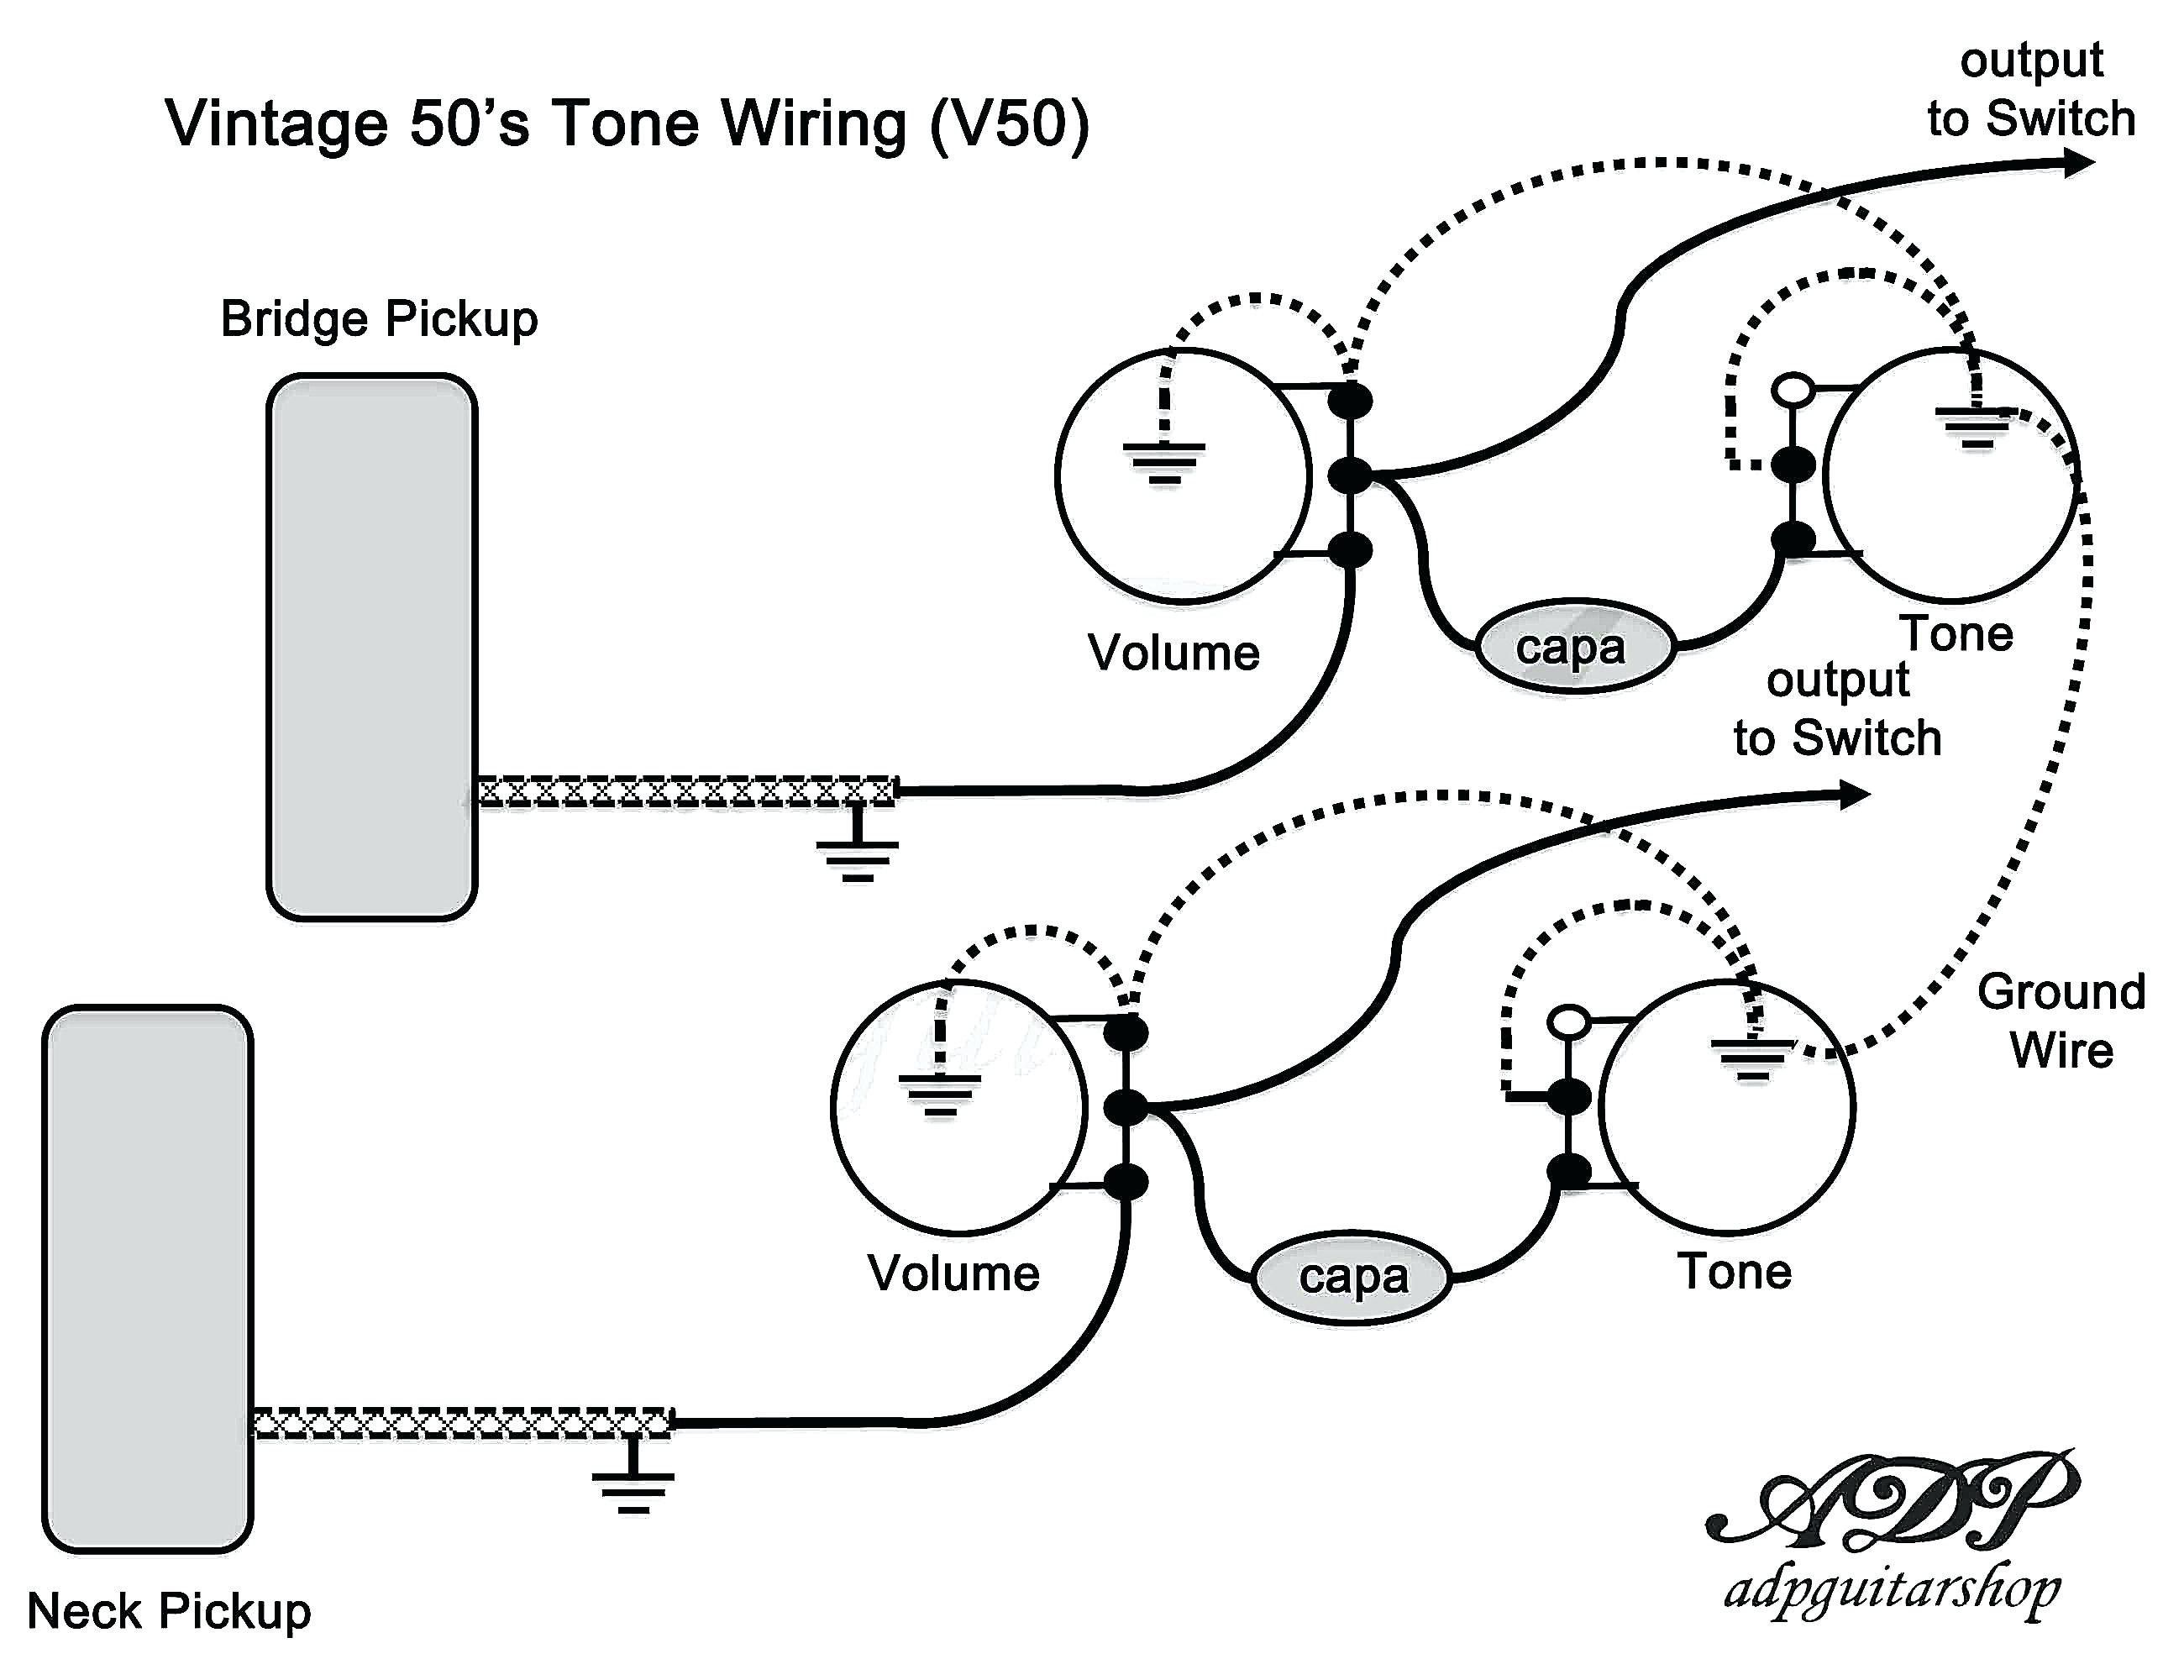 24 Good Sample Of Automotive Wiring Diagrams Download Https Bacamajalah Com 24 Good Sample Of Automoti Epiphone Les Paul Les Paul Epiphone Les Paul Special